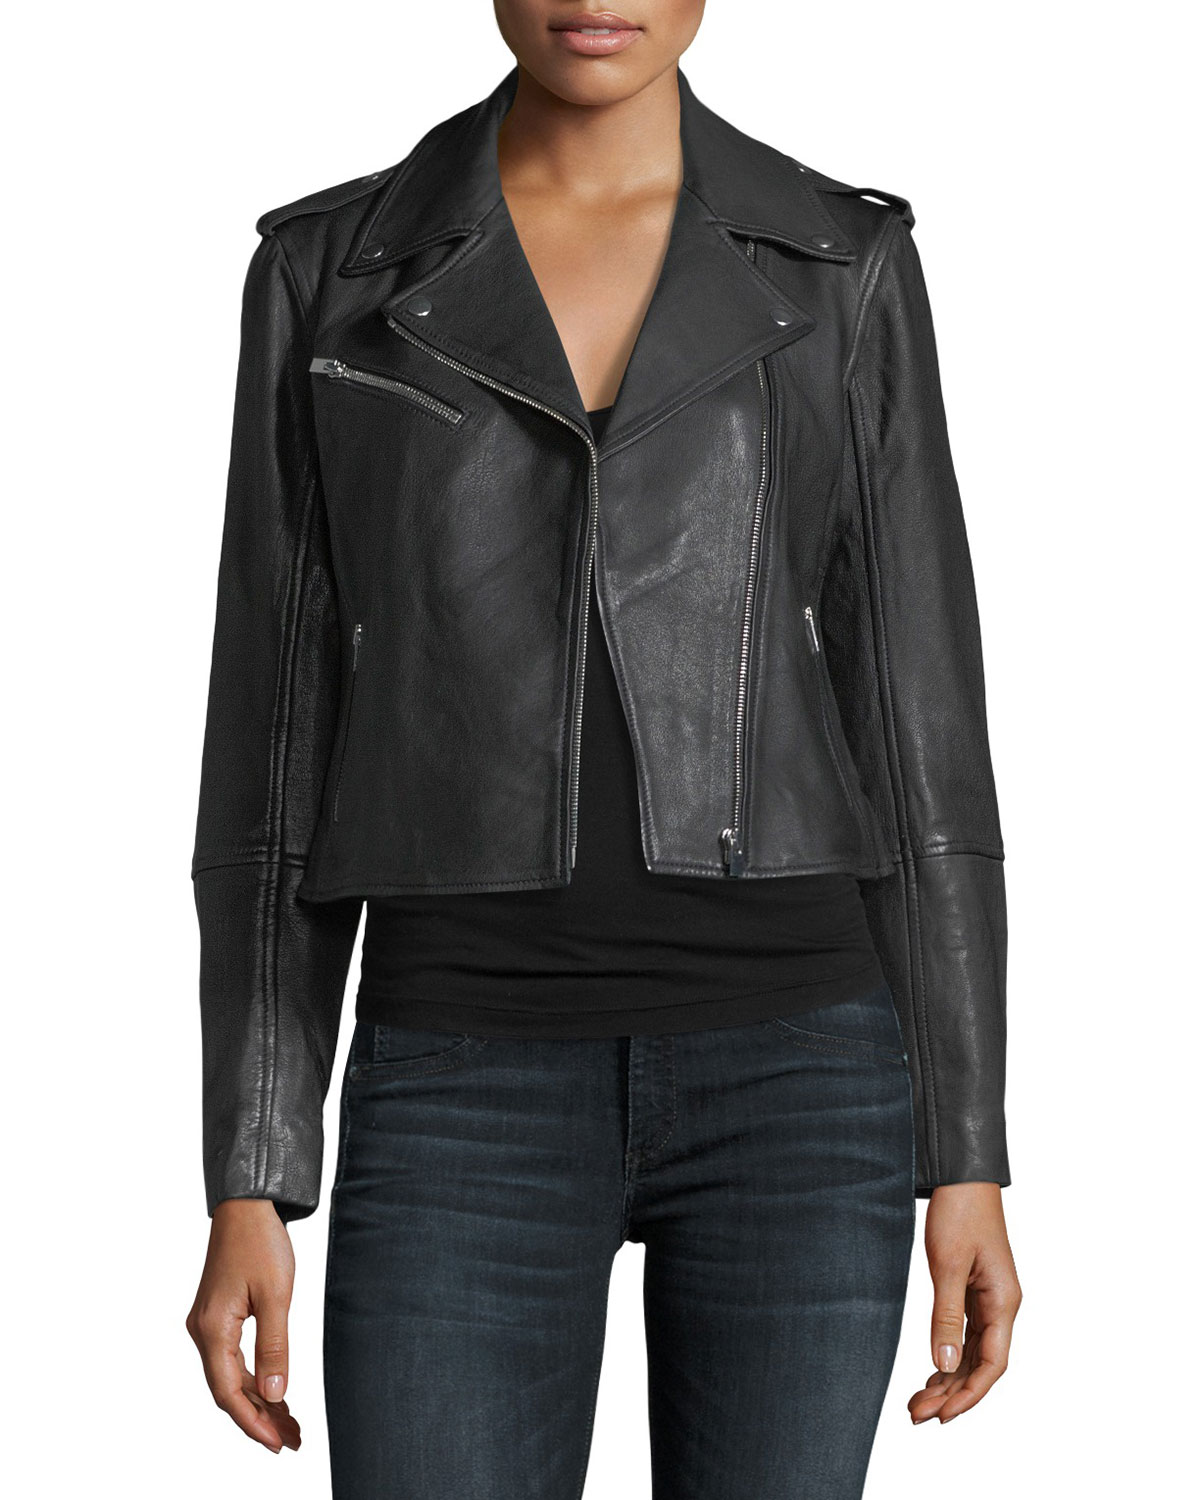 Fall Trends: Women's Leather Jackets at Neiman Marcus